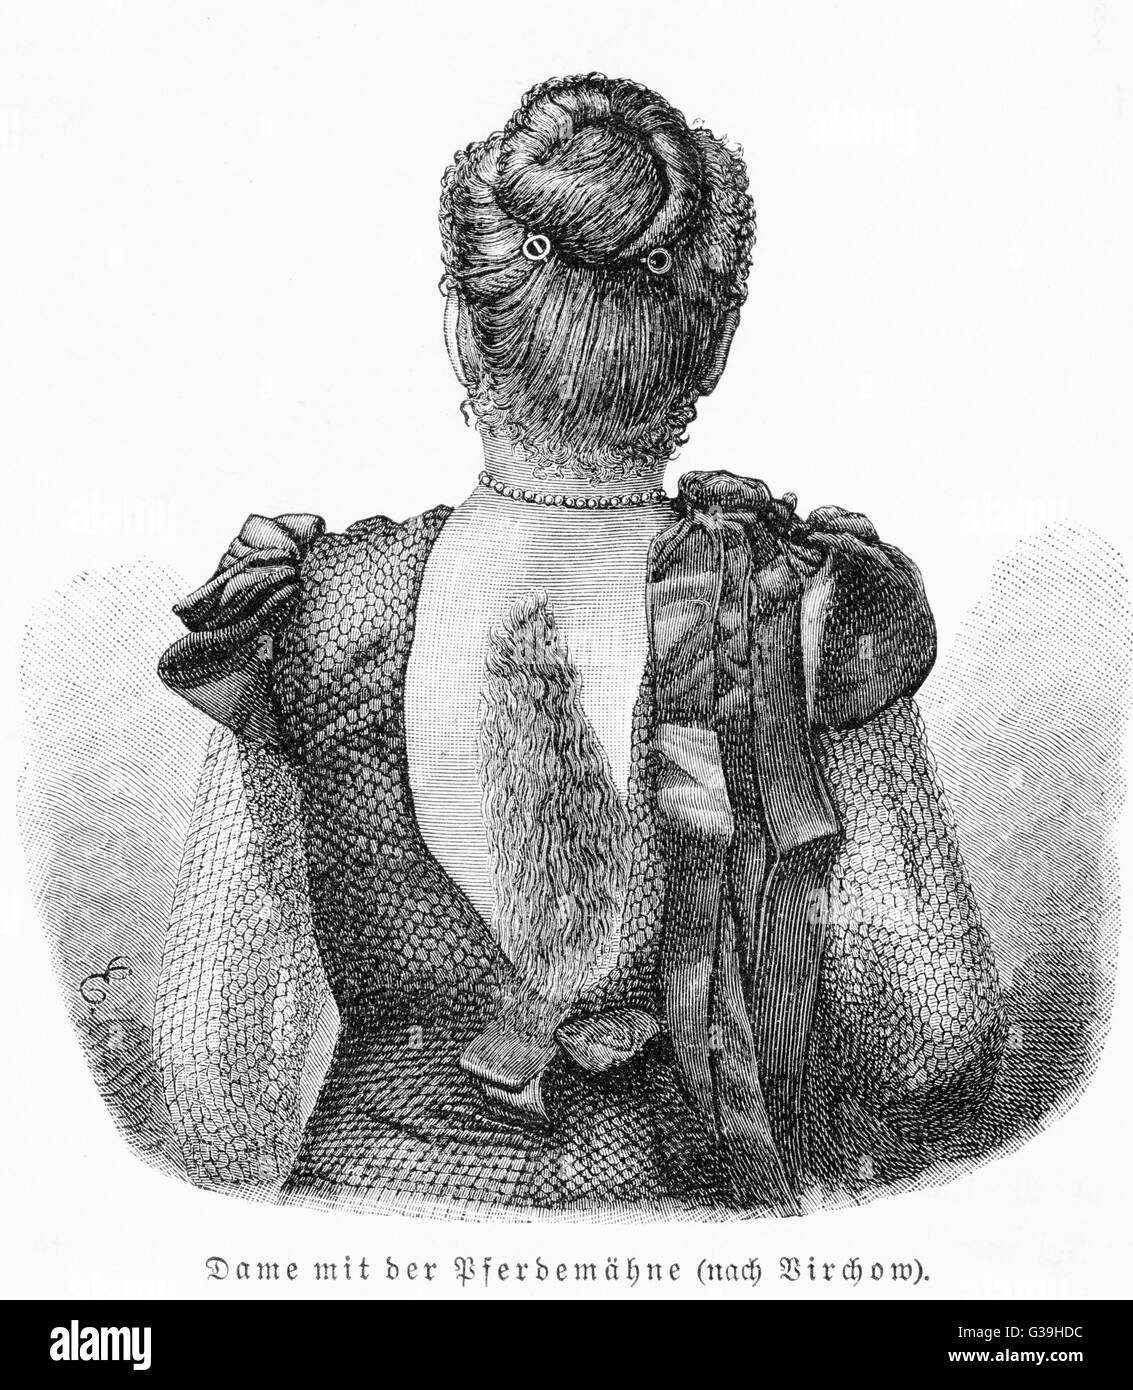 A lady with an abnormal growth  of hair on her back         Date: late 19th century - Stock Image